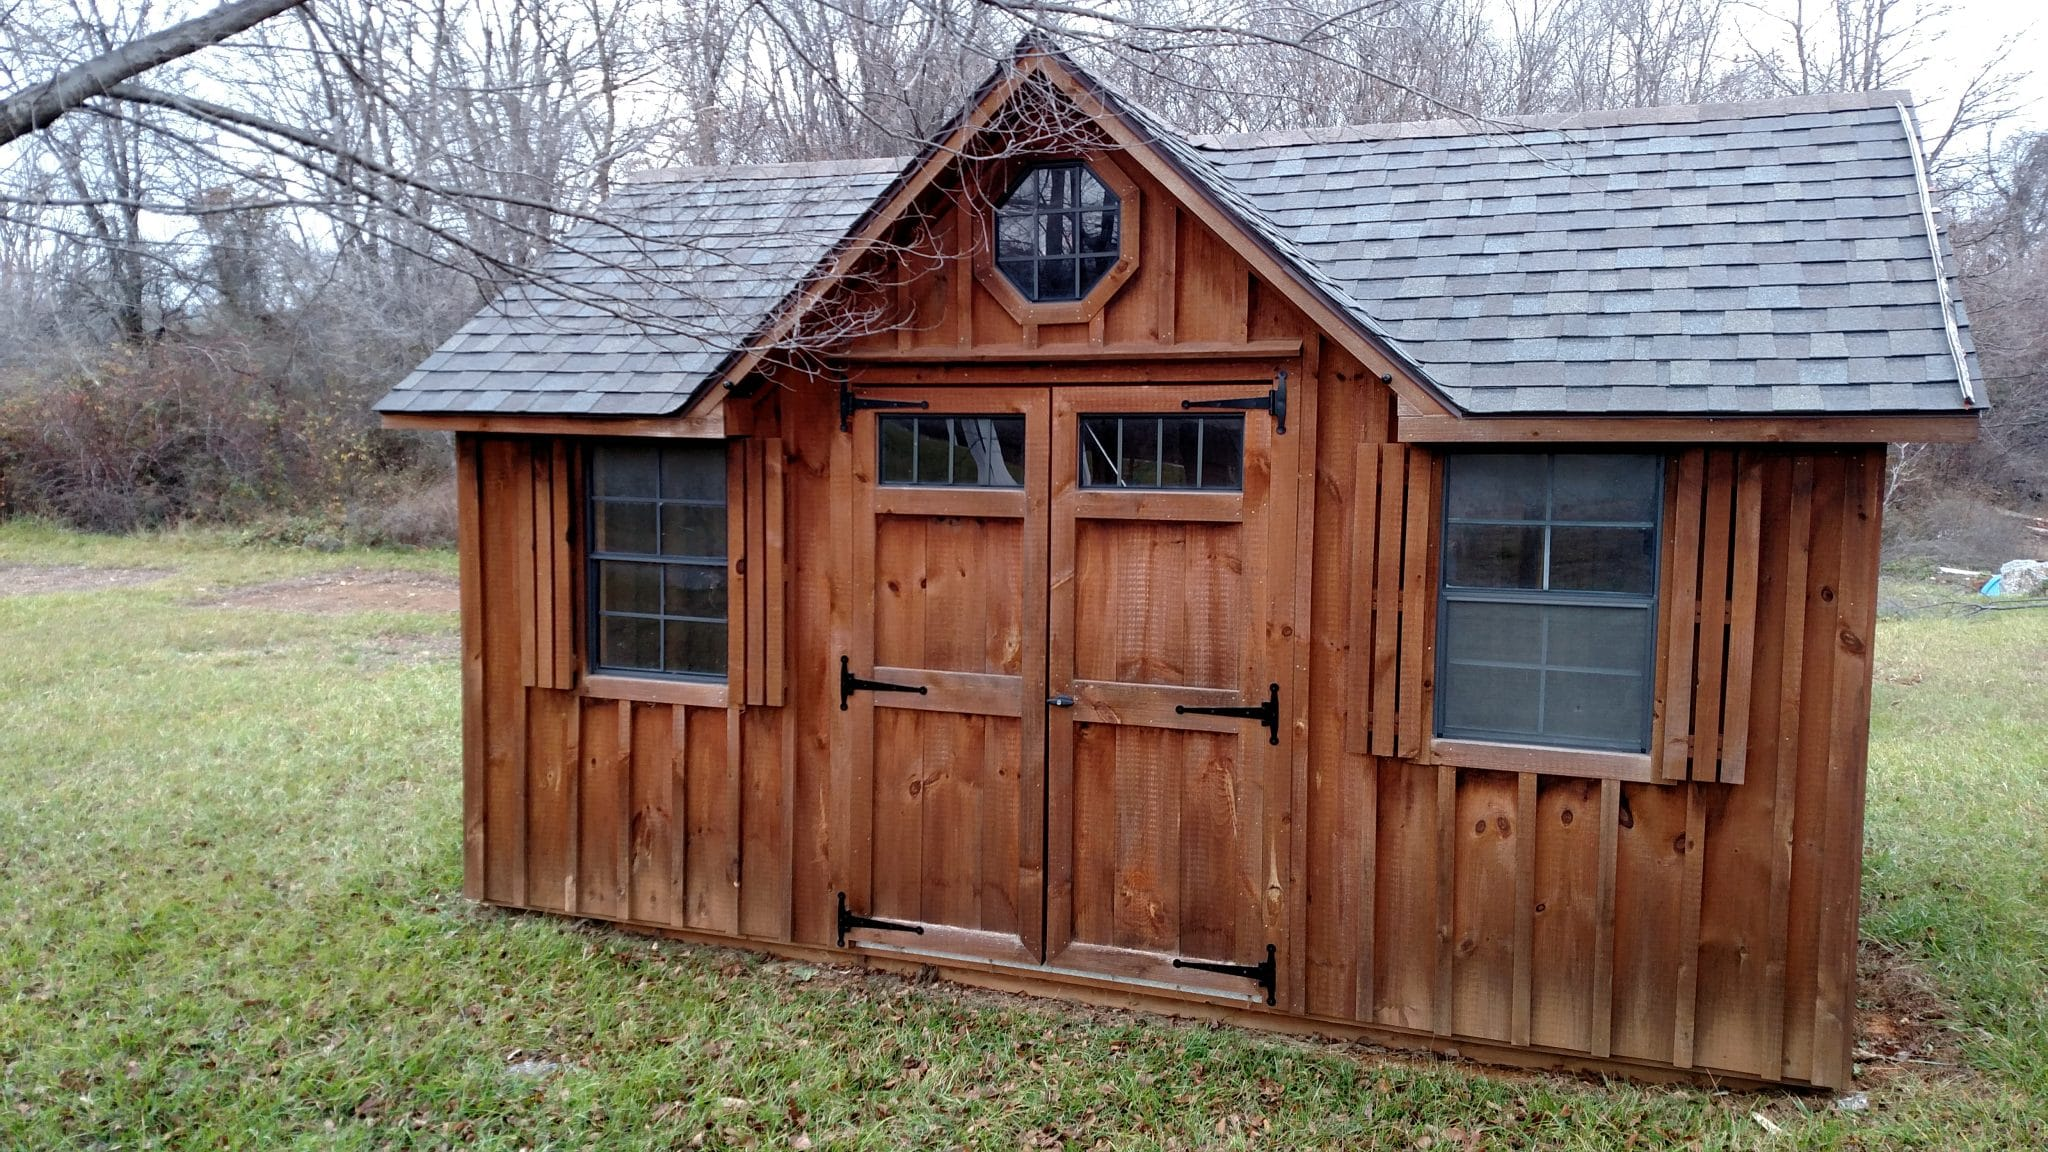 Wooden Victorian Shed - Brown